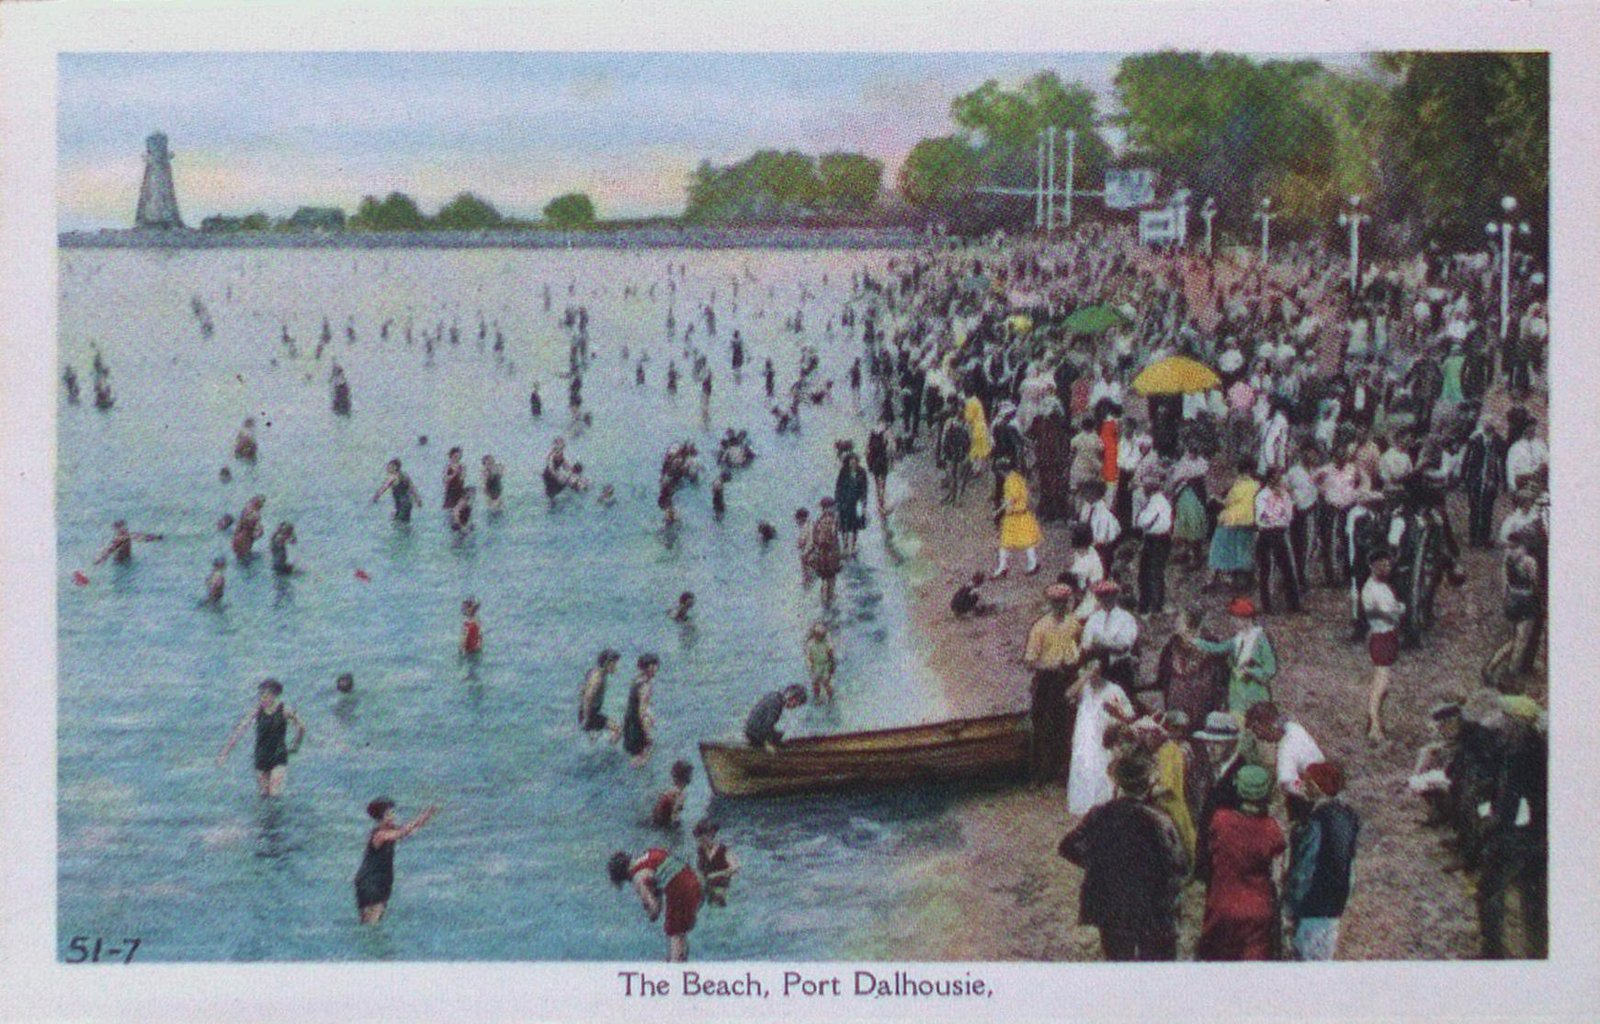 Souvenir view of St. Catharines & Port Dalhousie: The Beach, Port Dalhousie